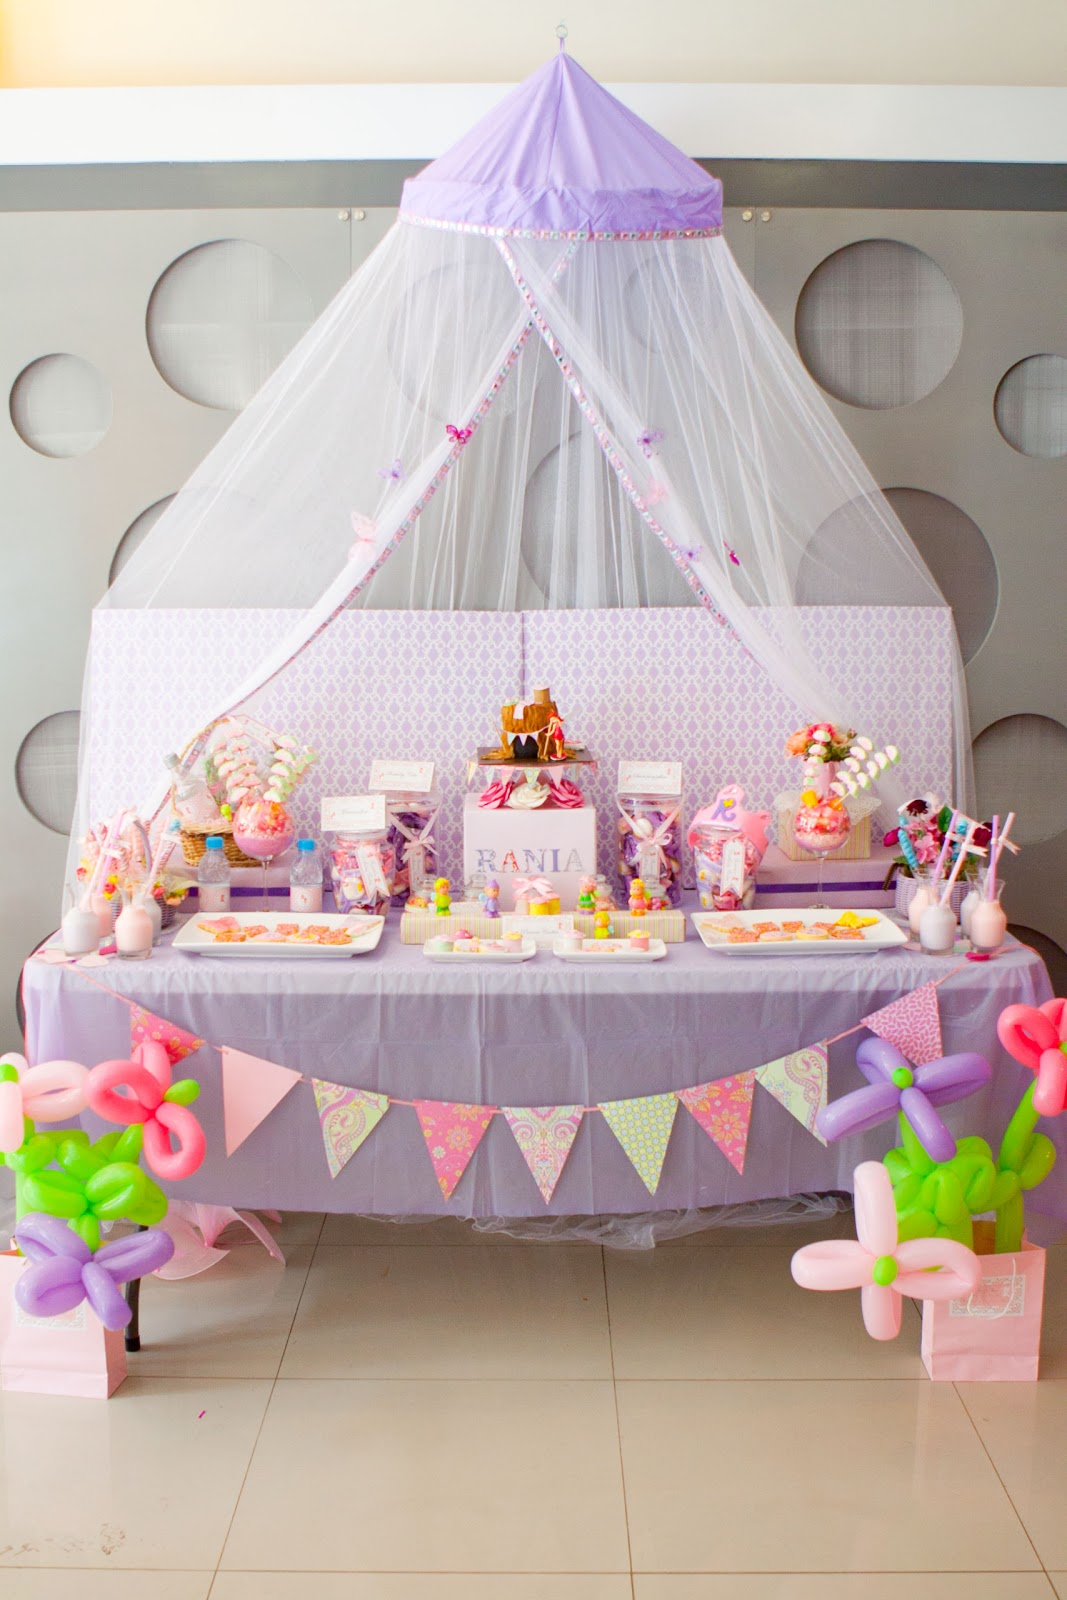 New York Princess Party was born in by President and Creative Director, Erin Shaw. After being featured in Daily Candy Kids, the company became wildly successful and Erin needed more performers. She enlisted the help of local actress, Maria Aparo and a fabulous partnership and friendship was born!5/5(8).